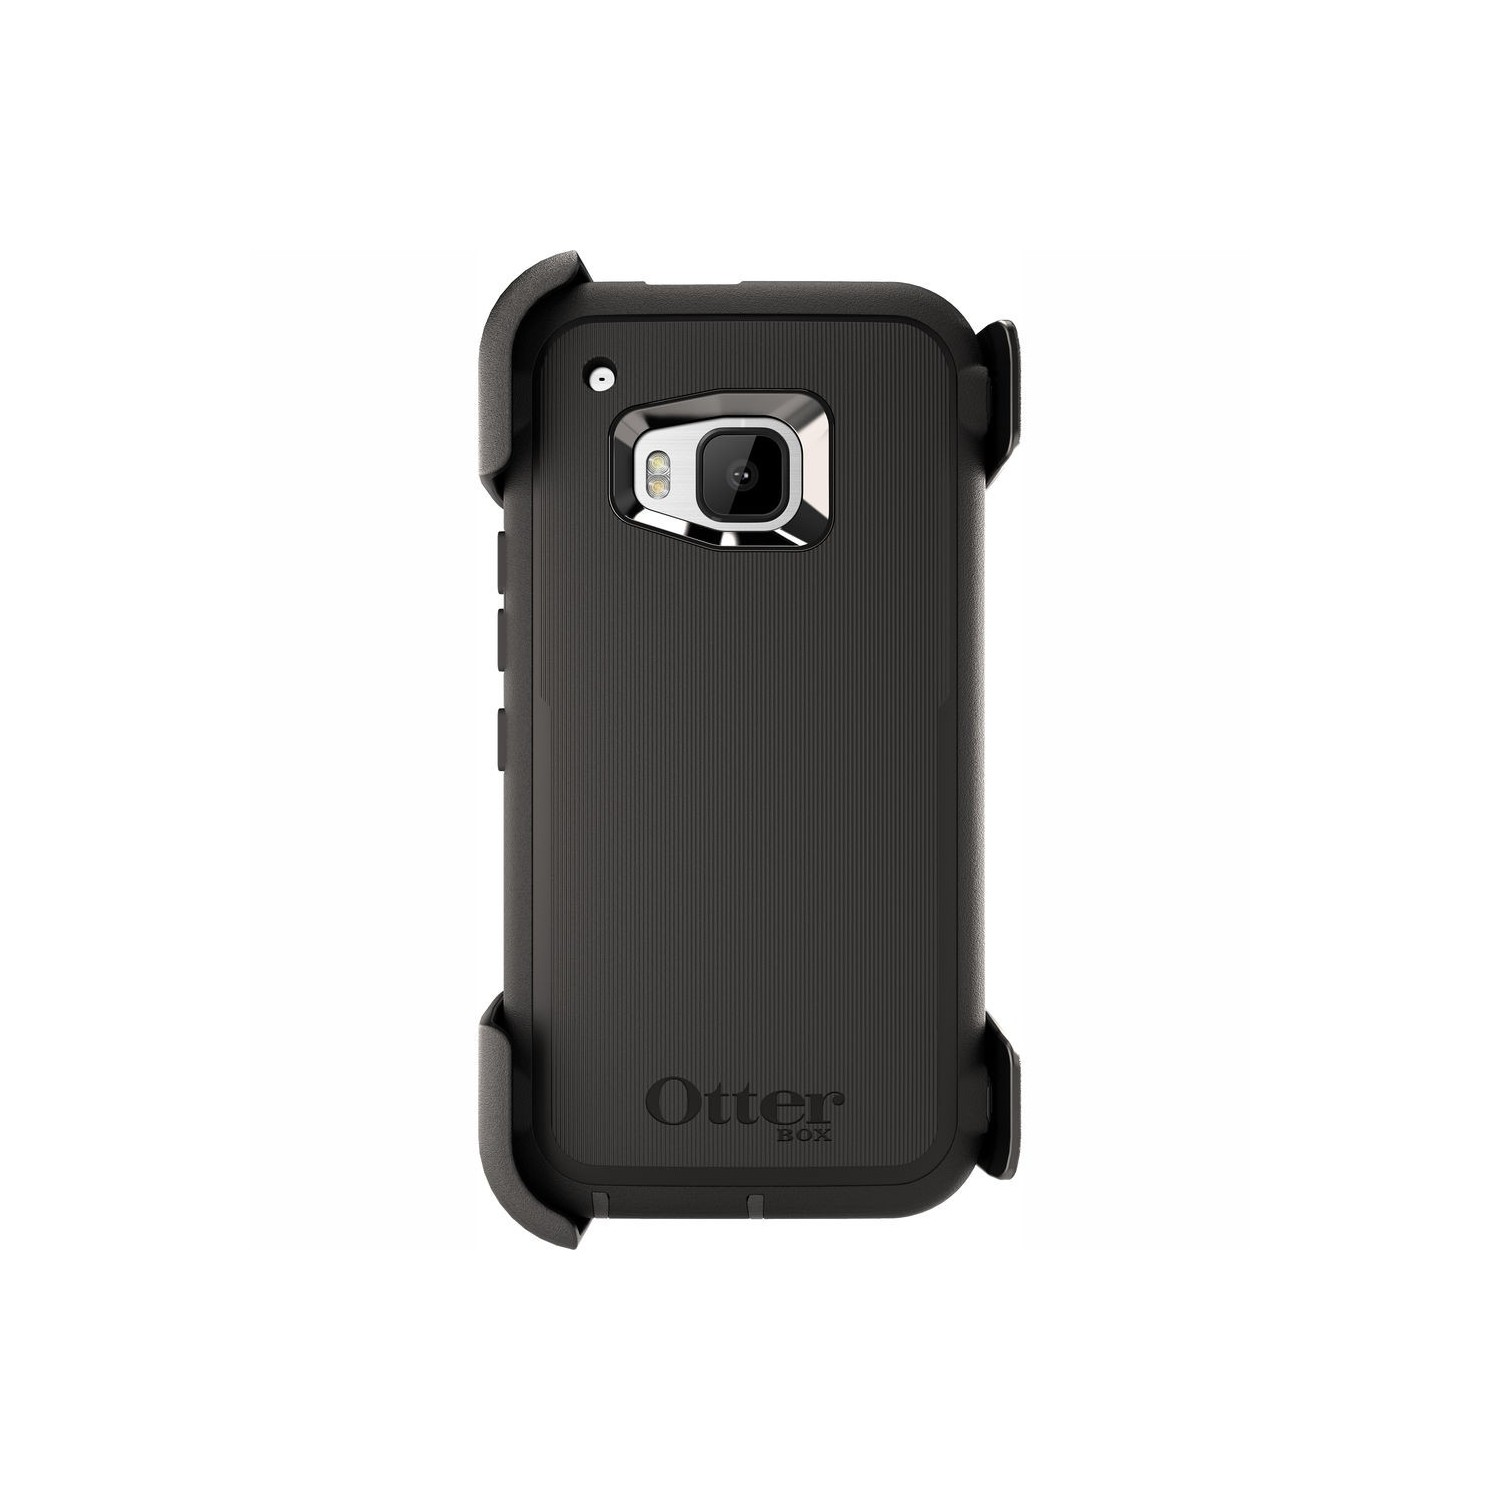 Case - Otterbox Defender for HTC One M9